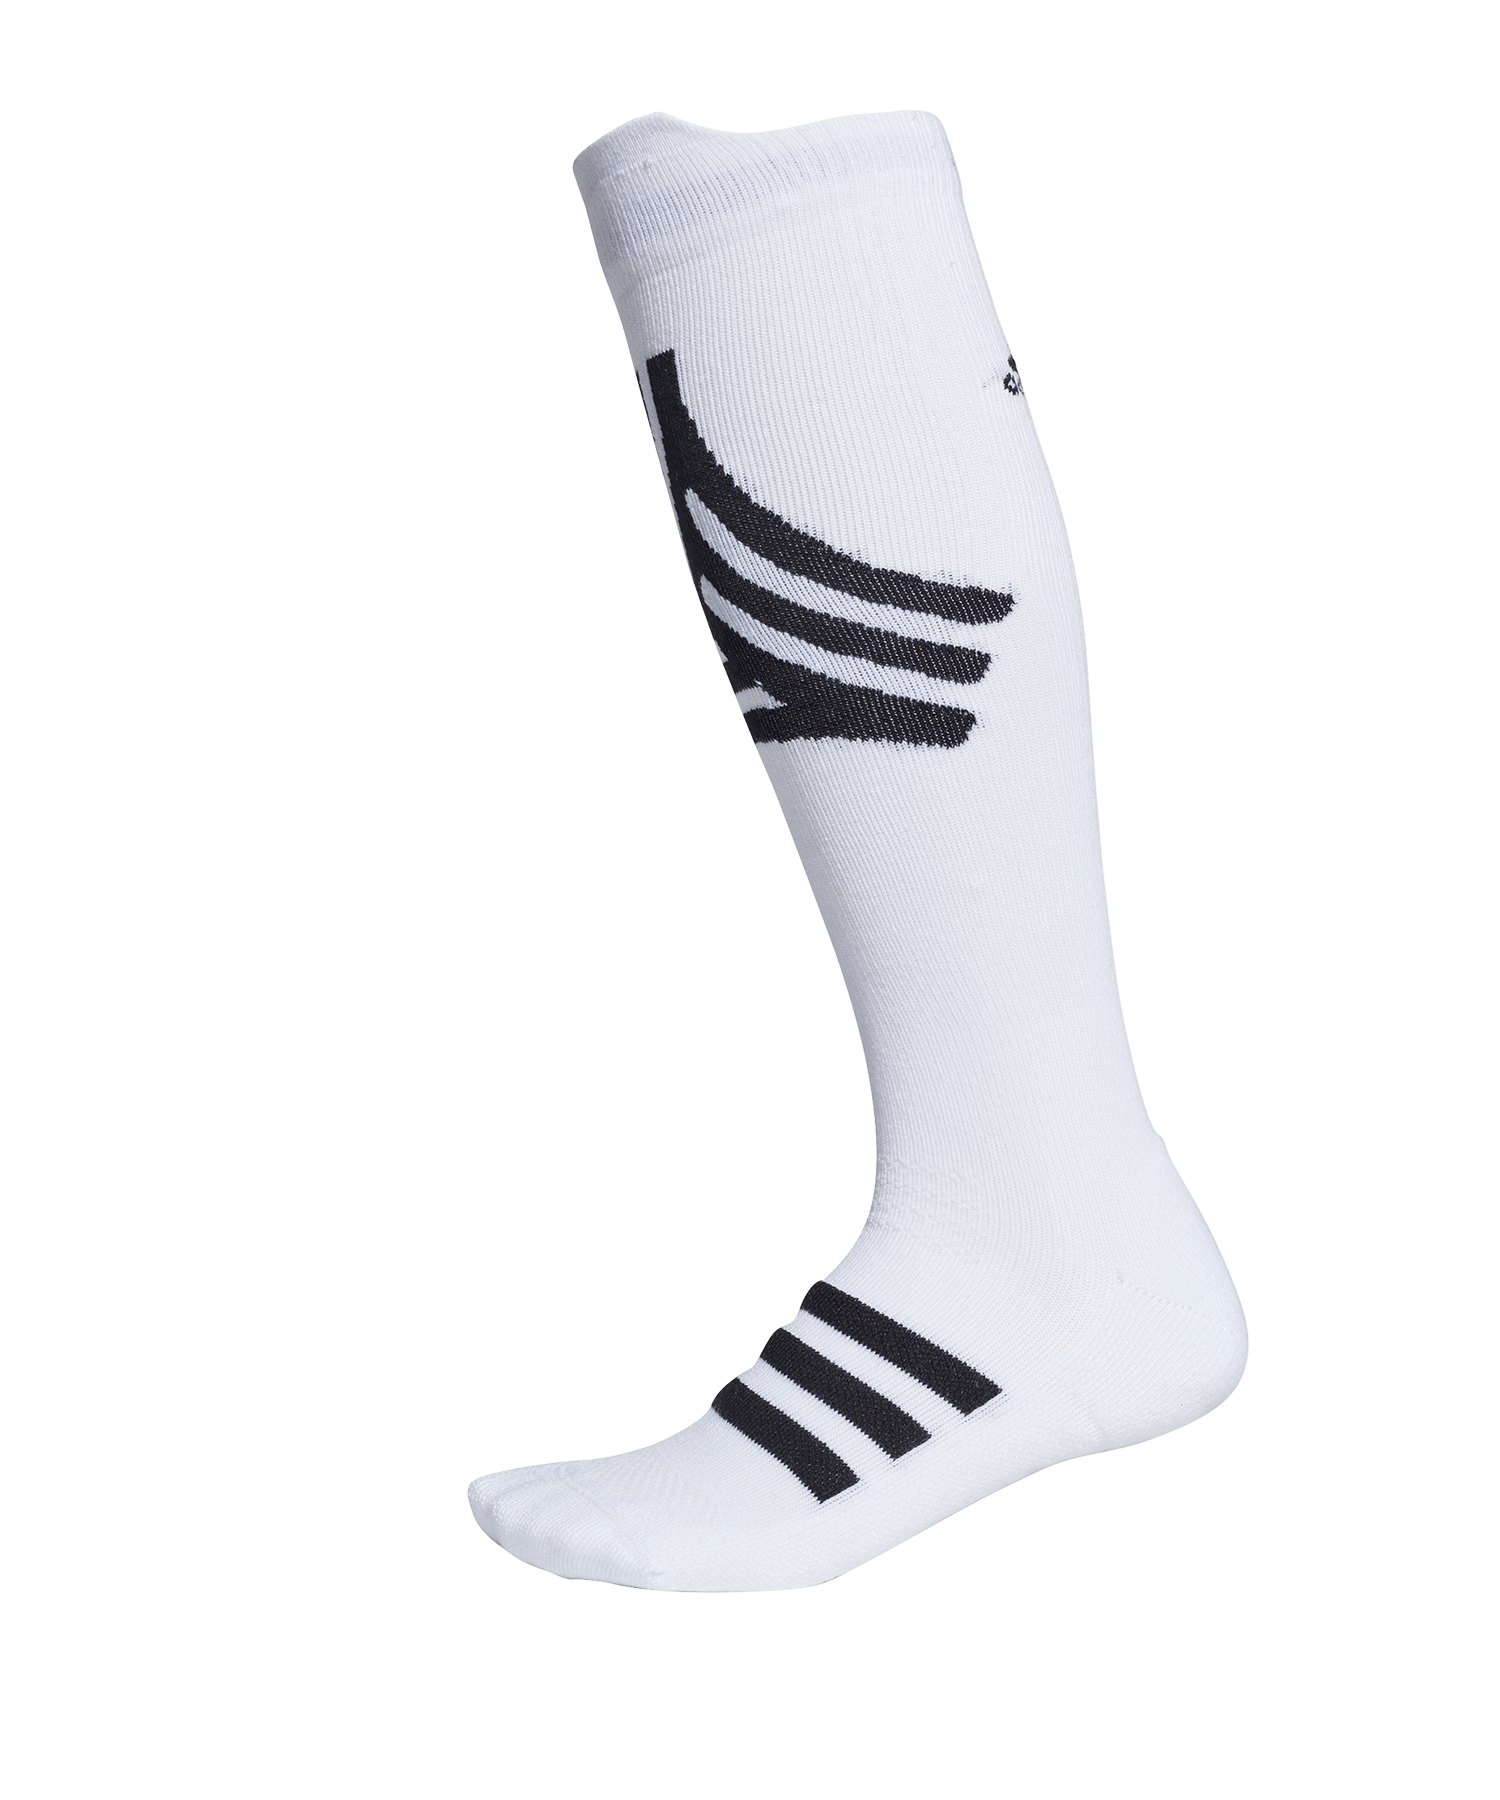 adidas Alphaskin Graphic OTC LC Socken Weiss - weiss